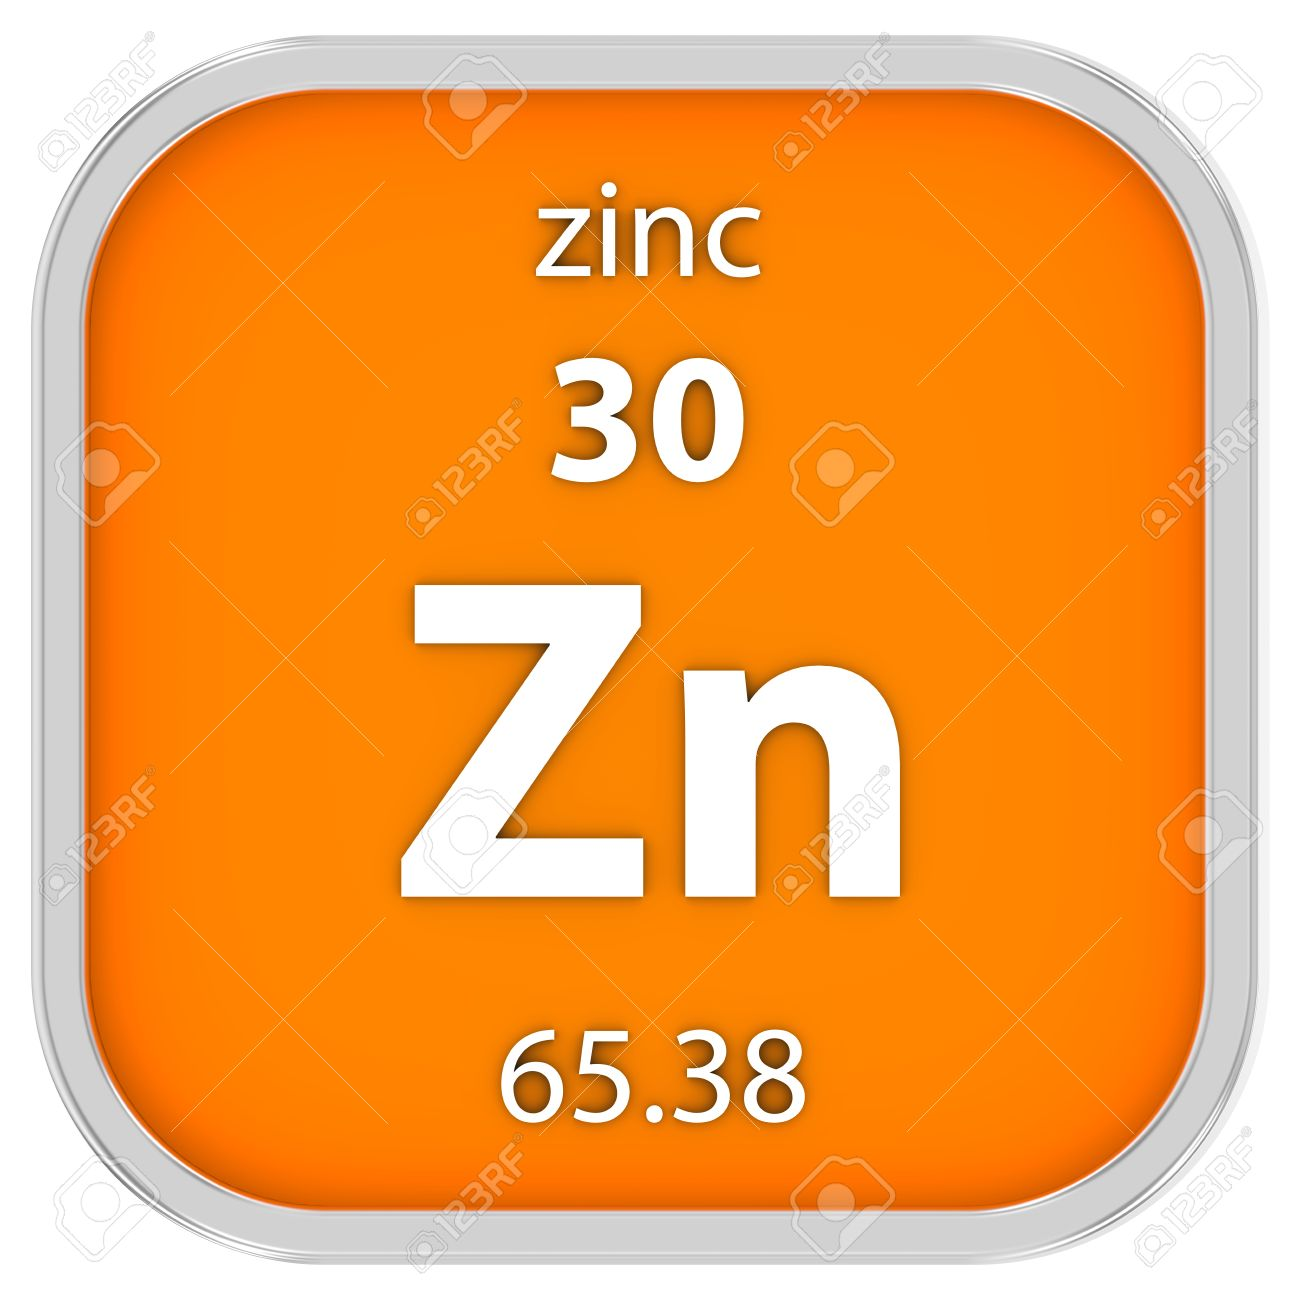 Zinc material on the periodic table part of a series stock photo zinc material on the periodic table part of a series stock photo 39444470 gamestrikefo Gallery